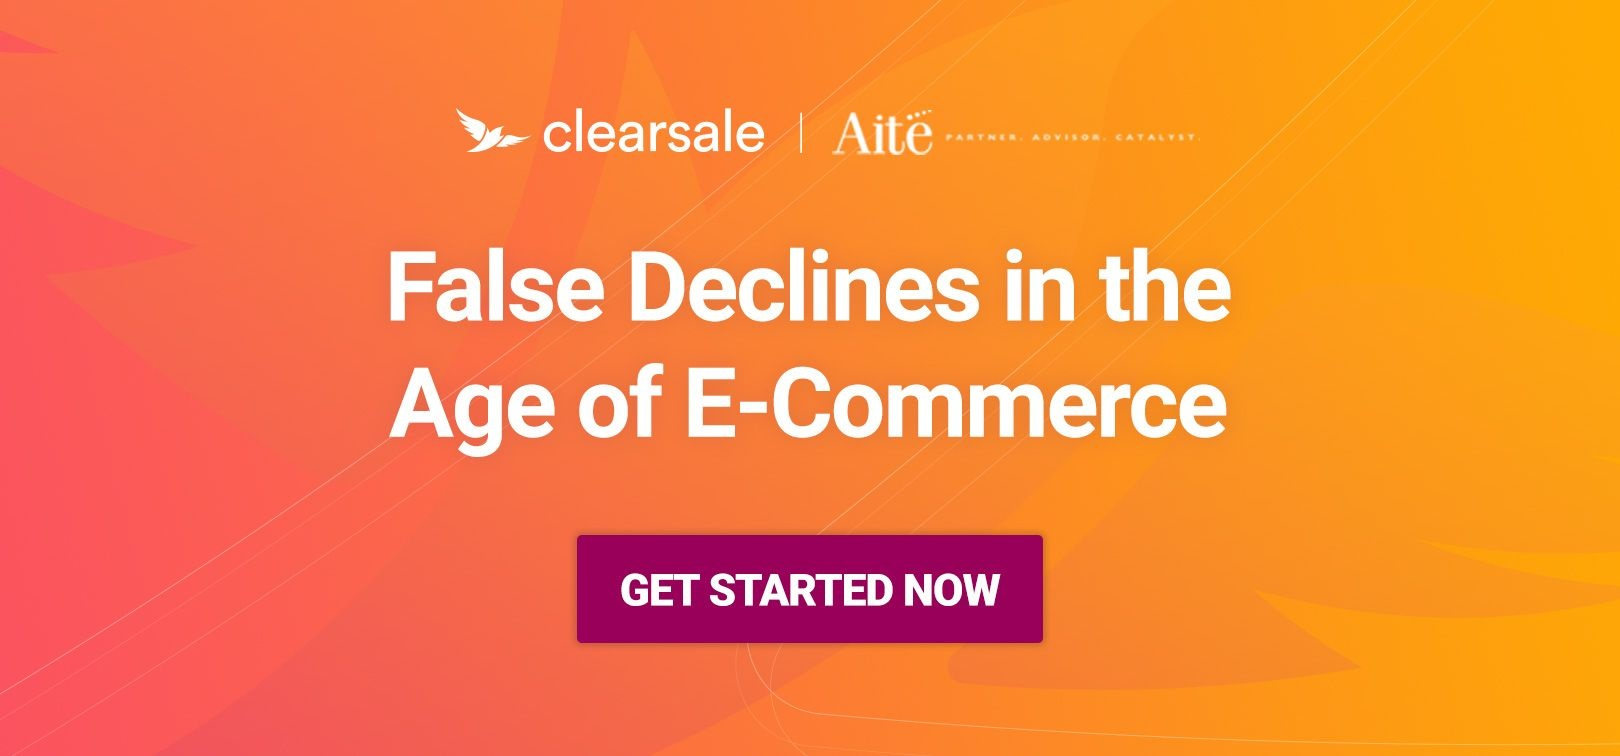 False Declines in the Age of e-commerce